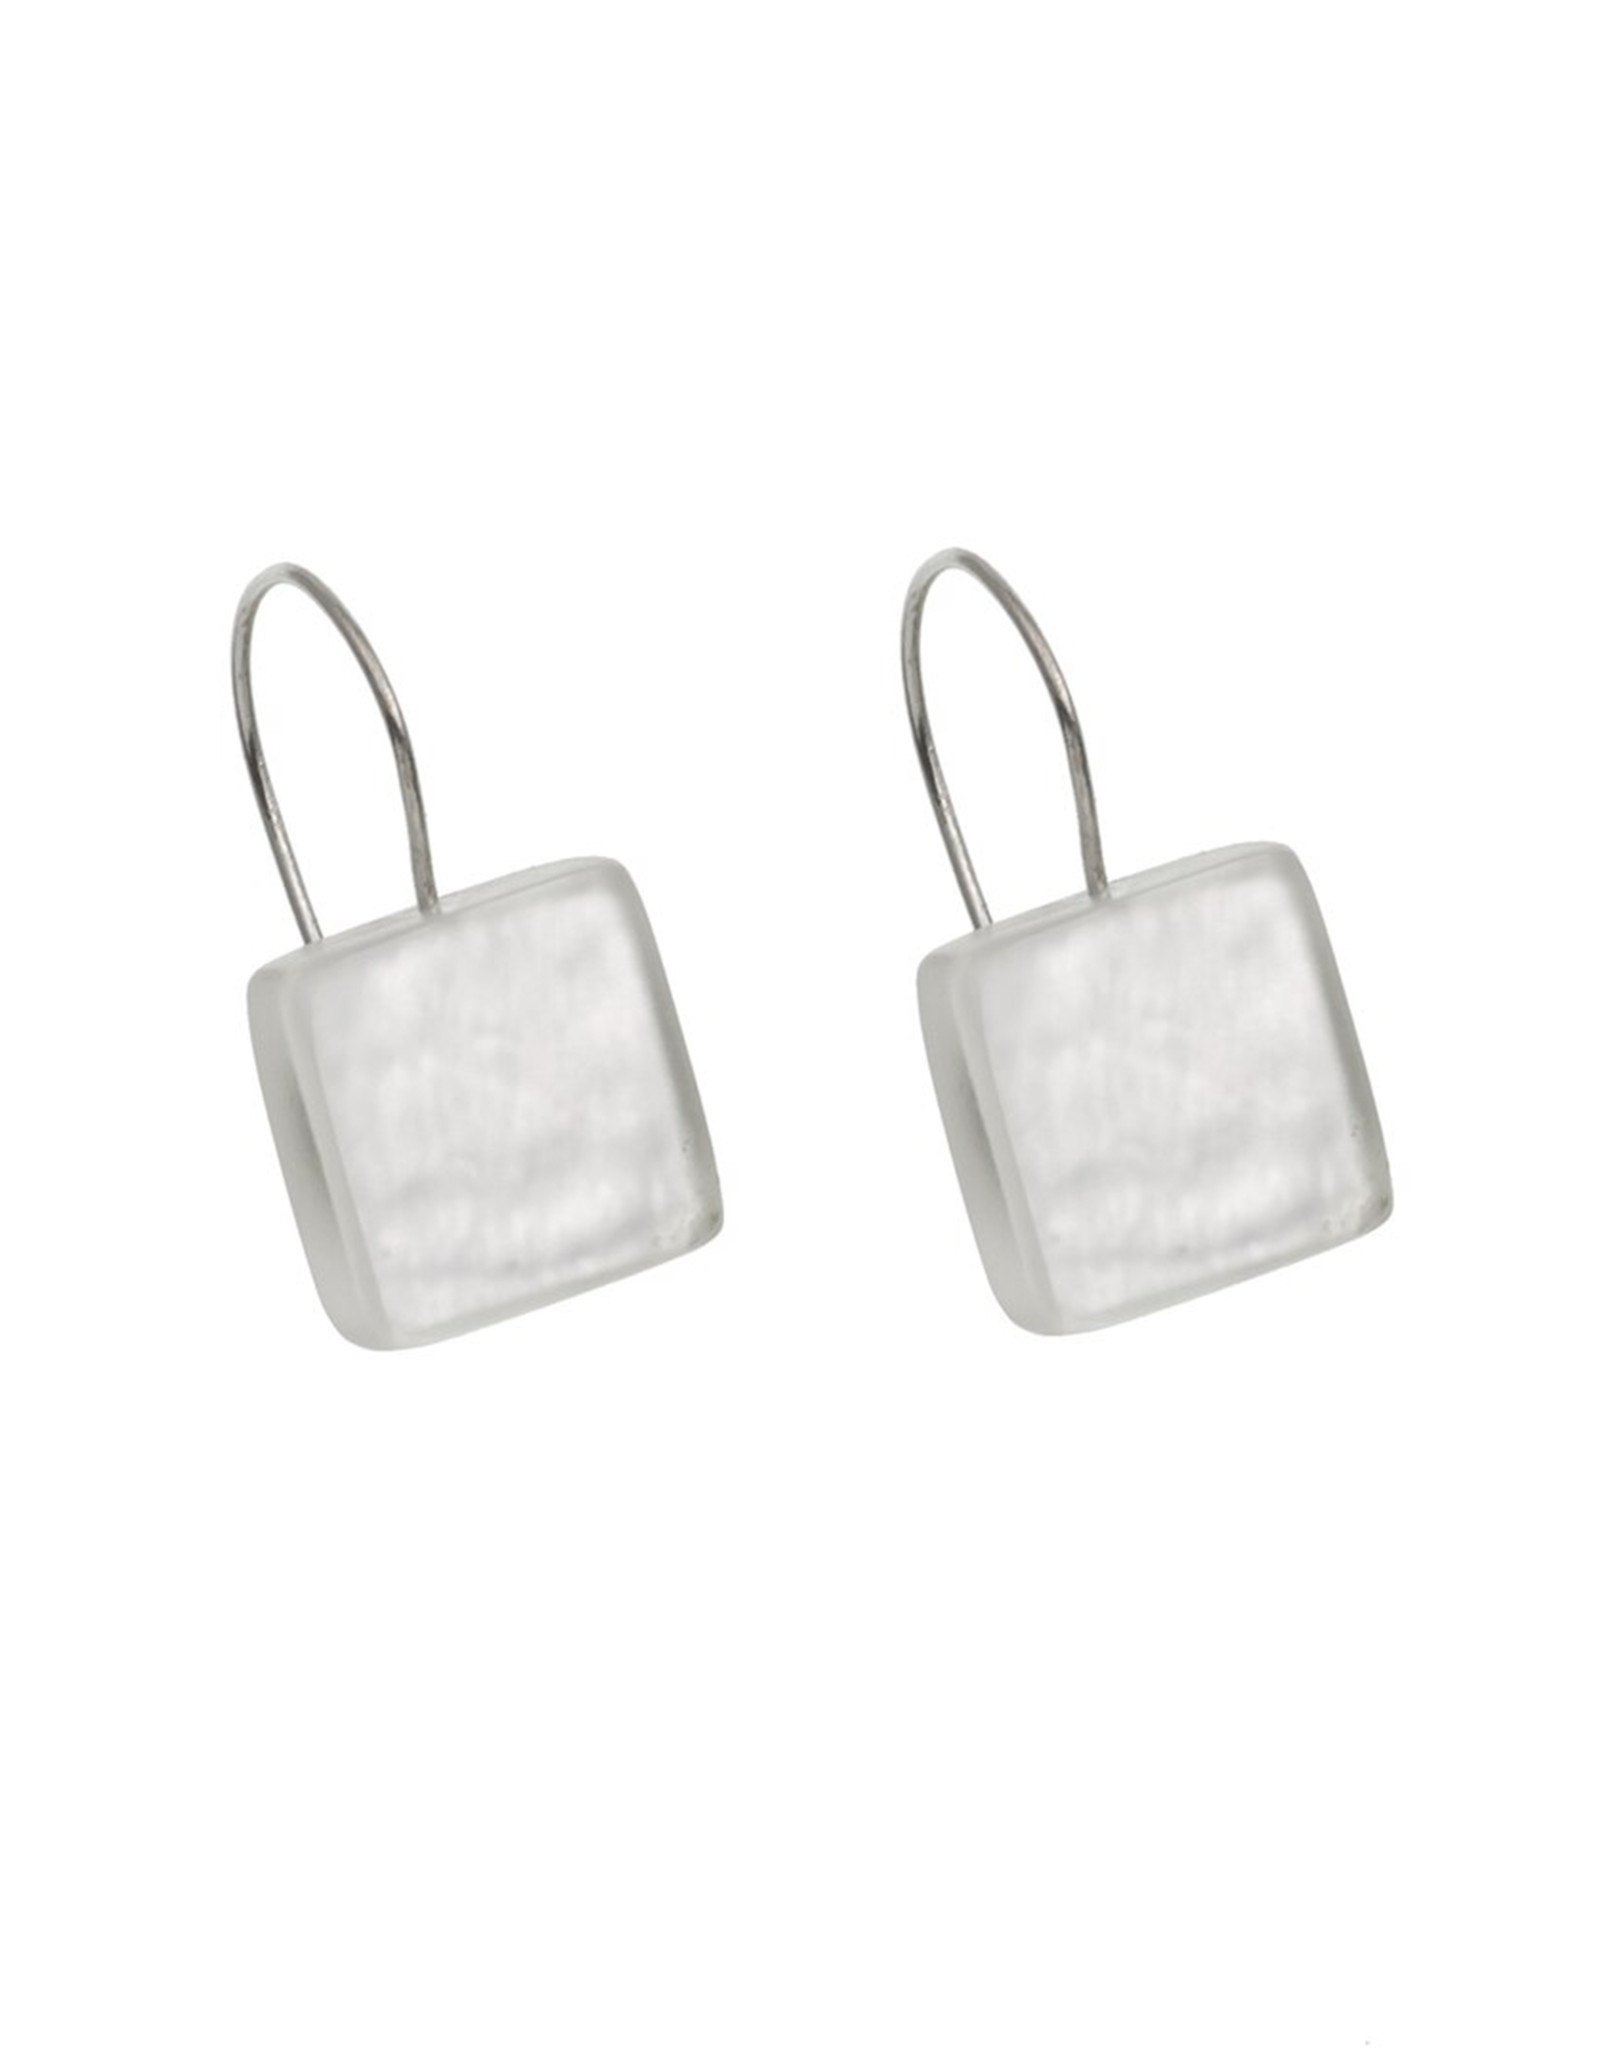 ORIGIN JEWELRY WHITE SQUARE EARRINGS